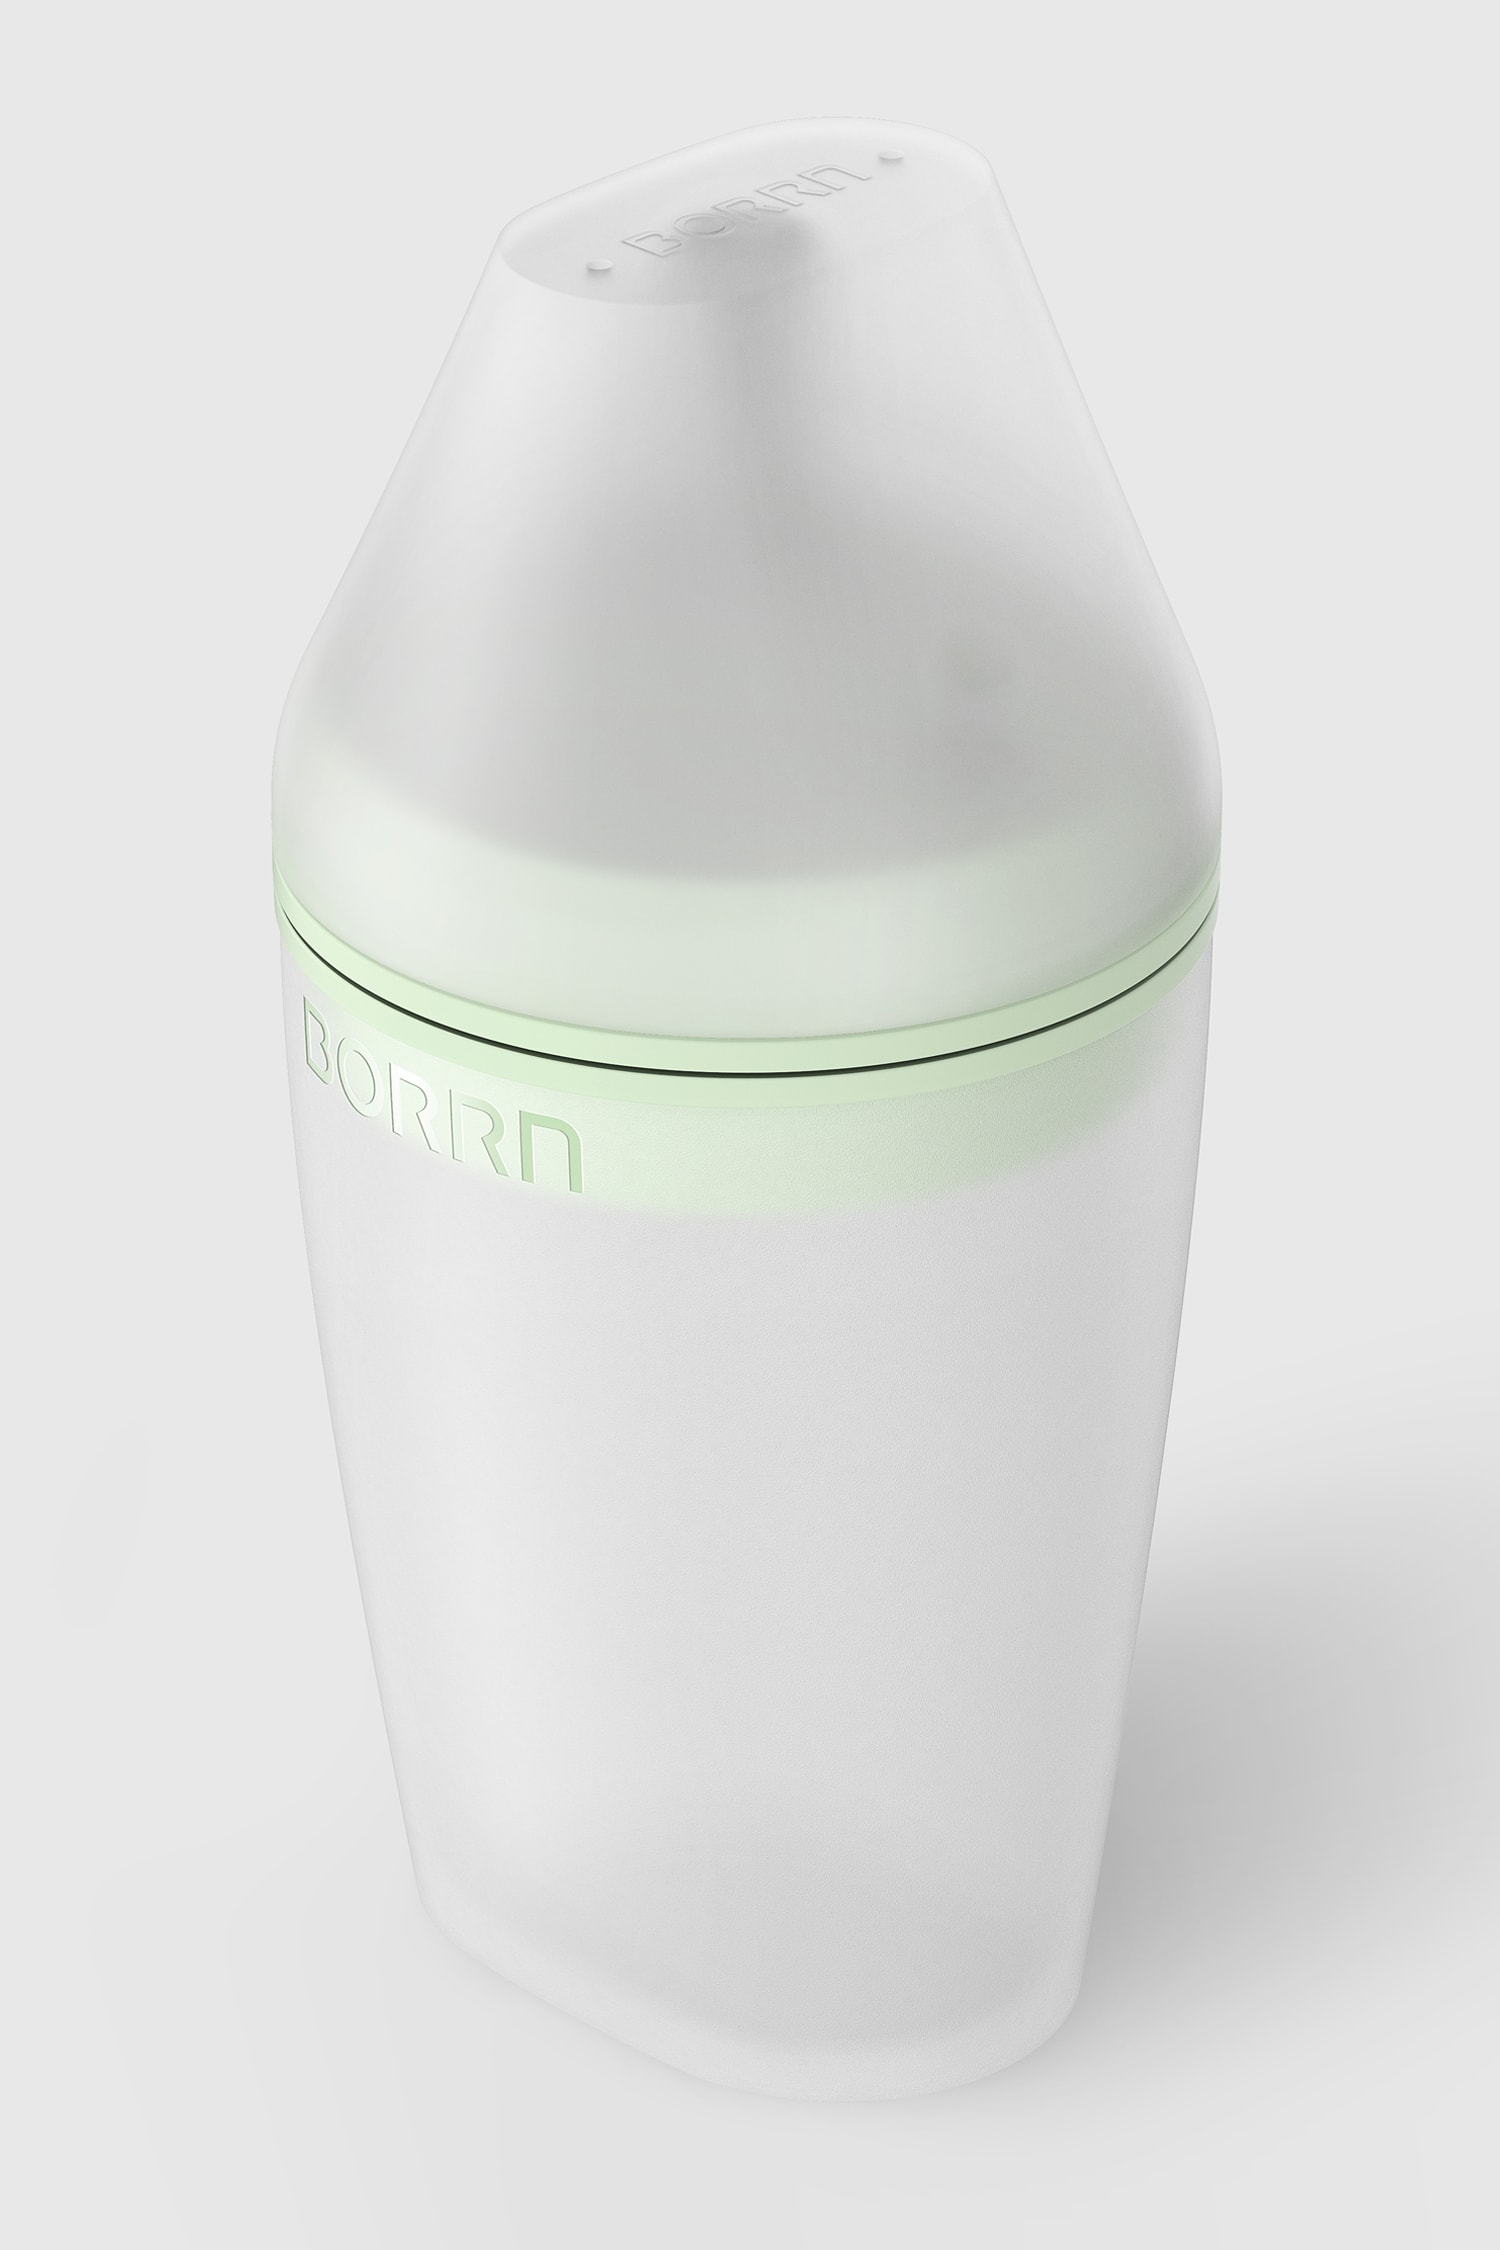 Perspective view of the large Borrn bottle with lid, green on a green background.